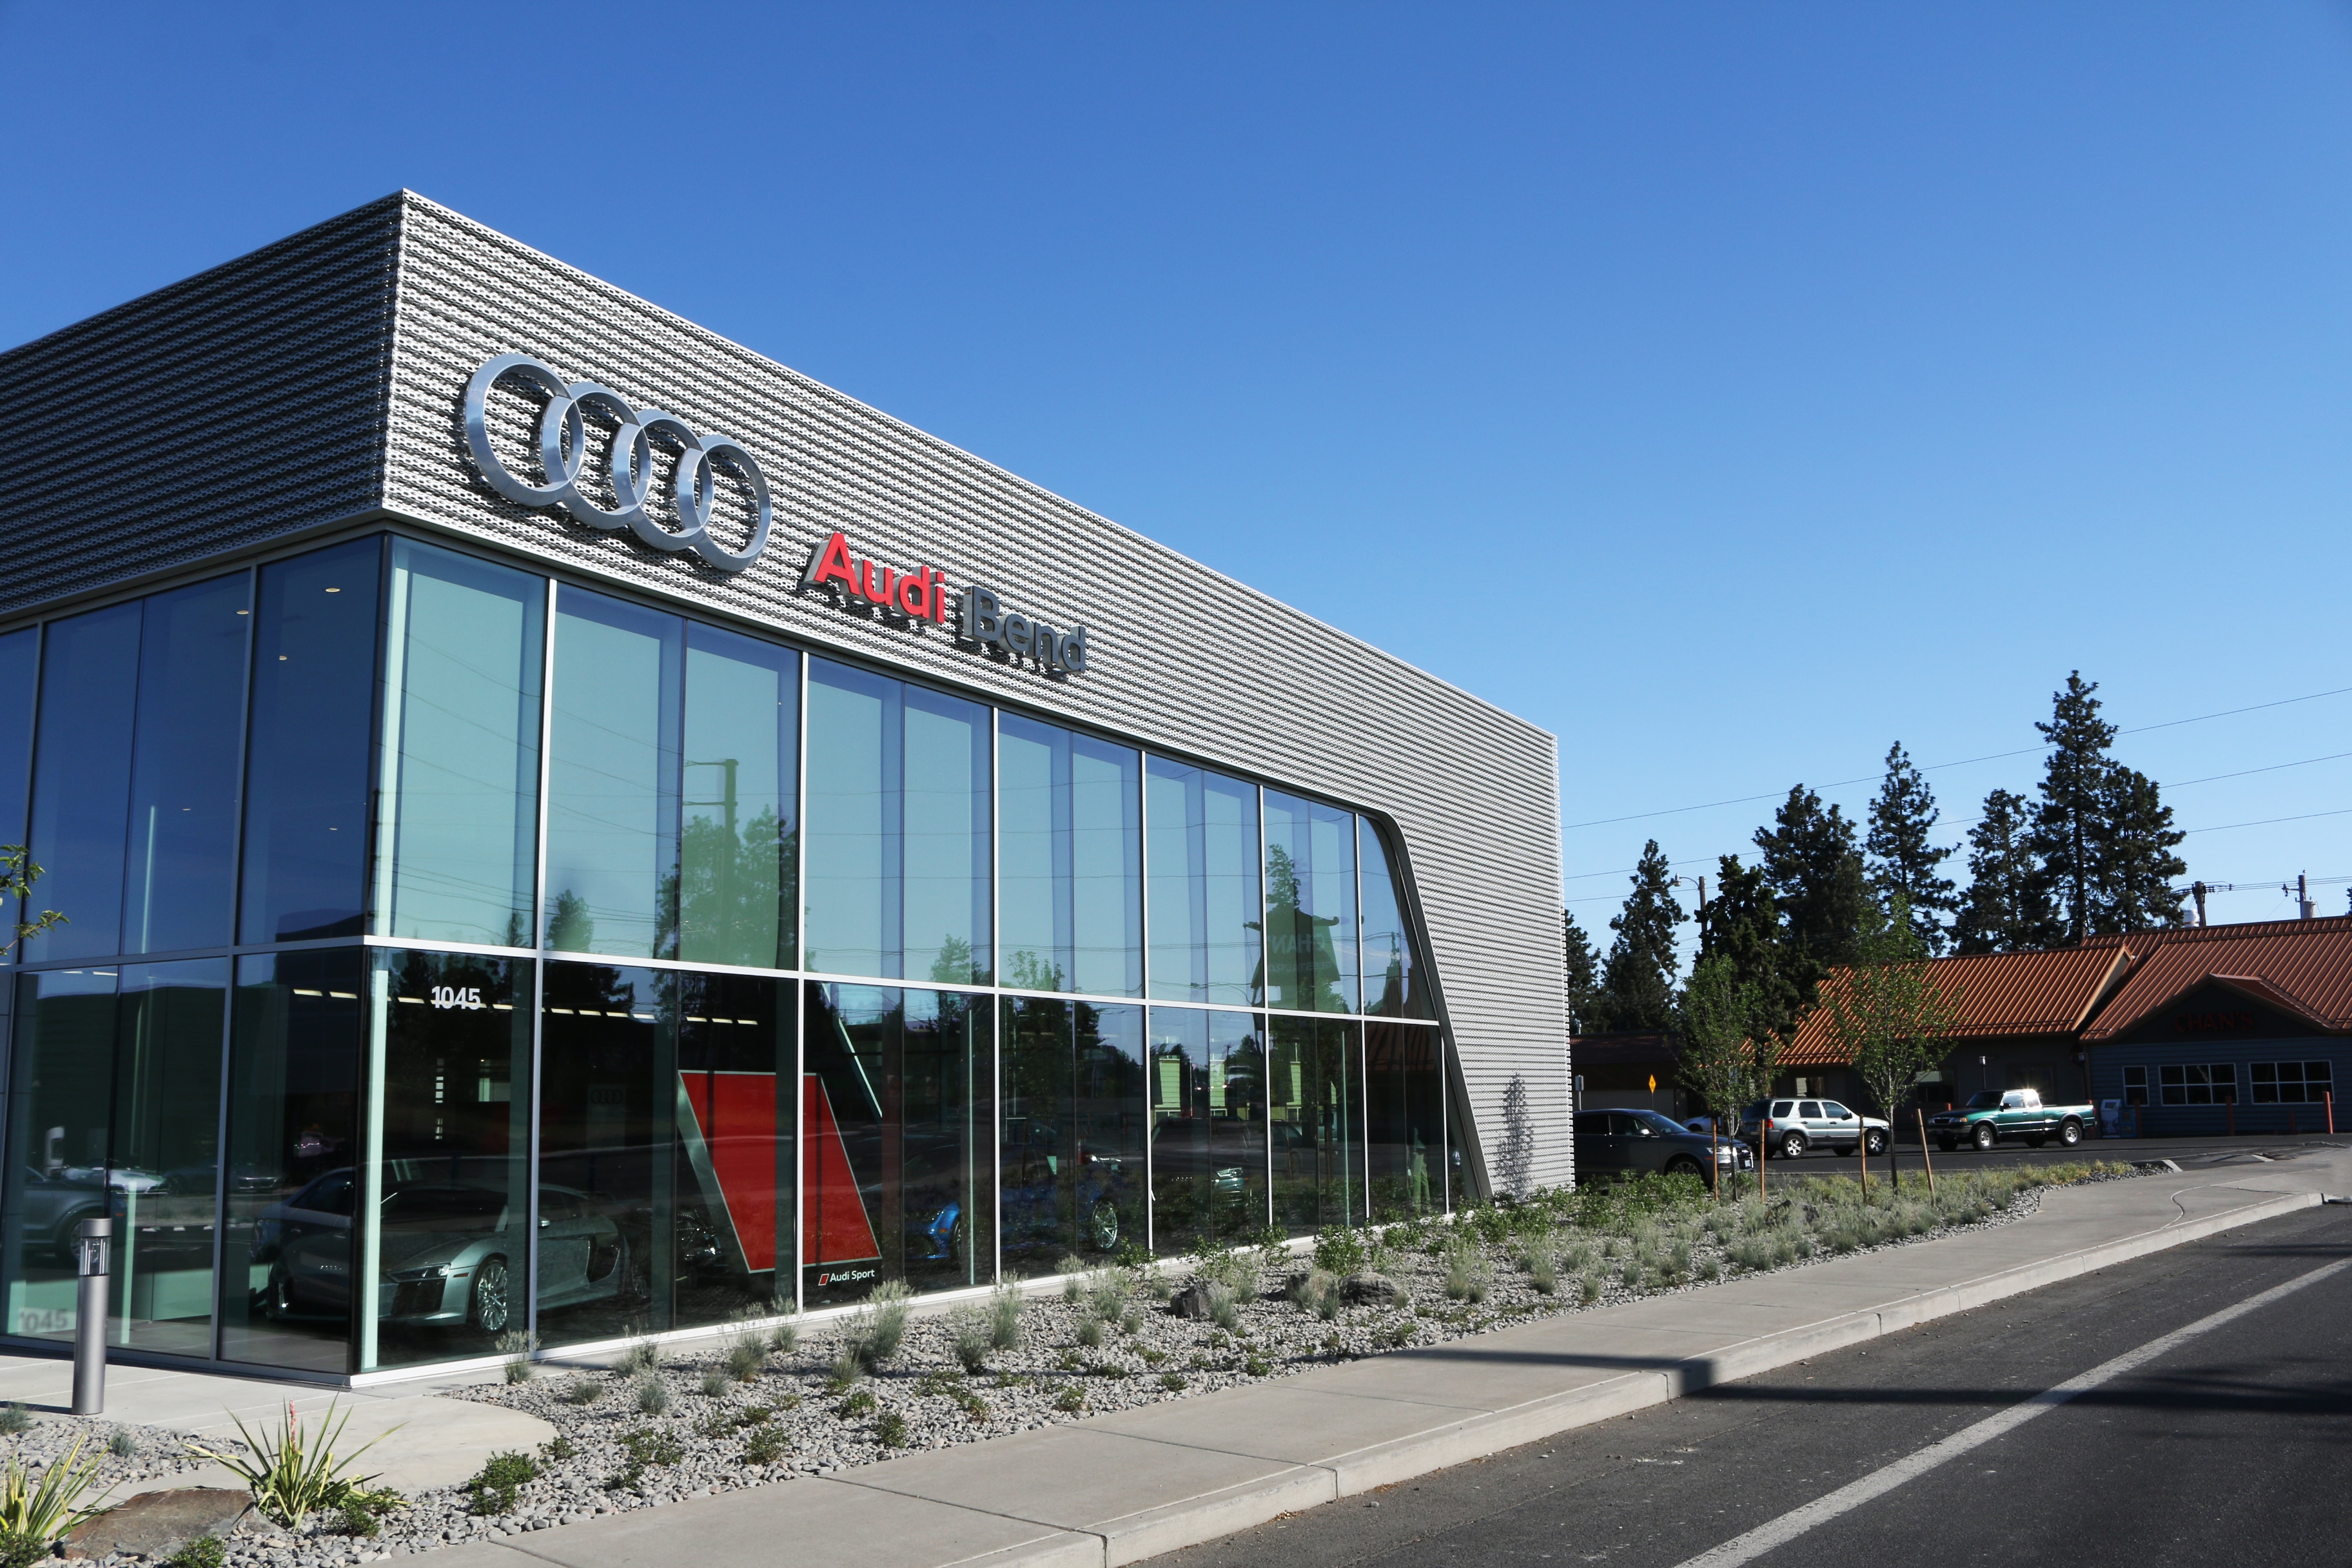 chicago awards best sedan the dealership luxury money newsroom s images releases named for report u car world by small audi news